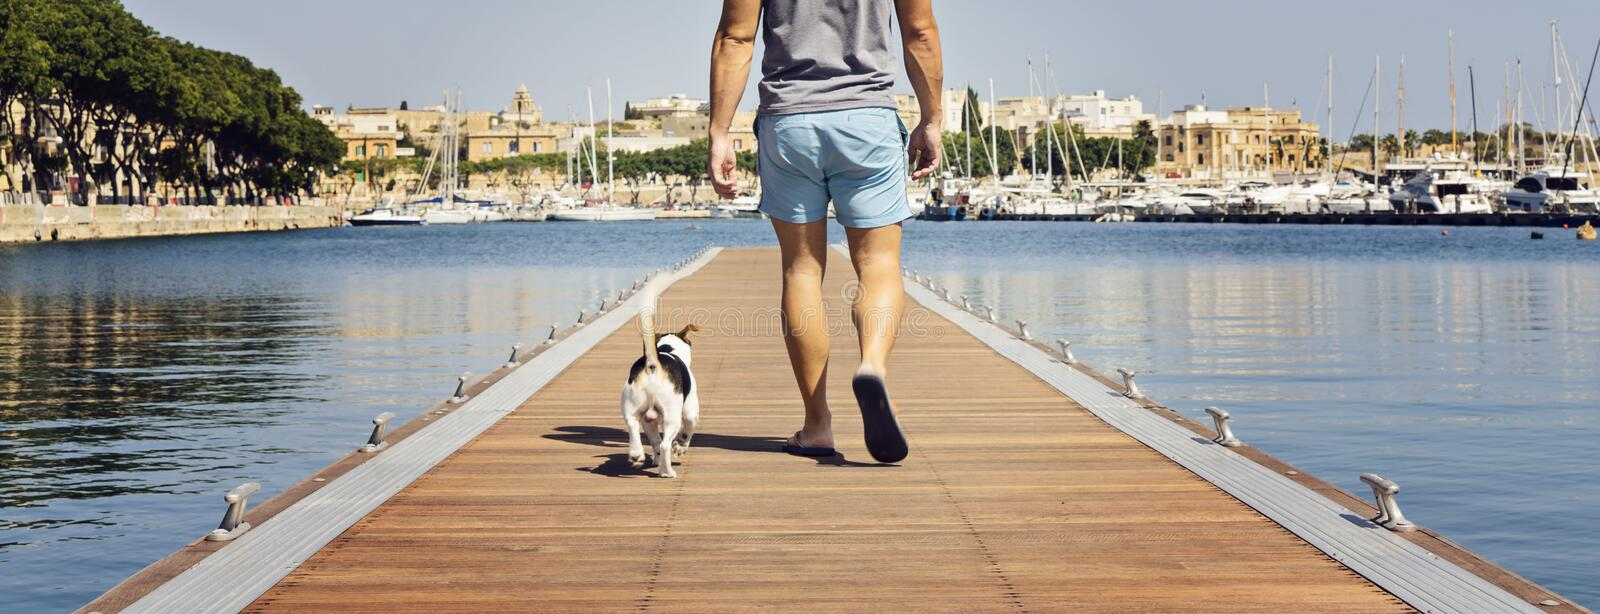 A man with a dog walking on the floating pier royalty free stock image